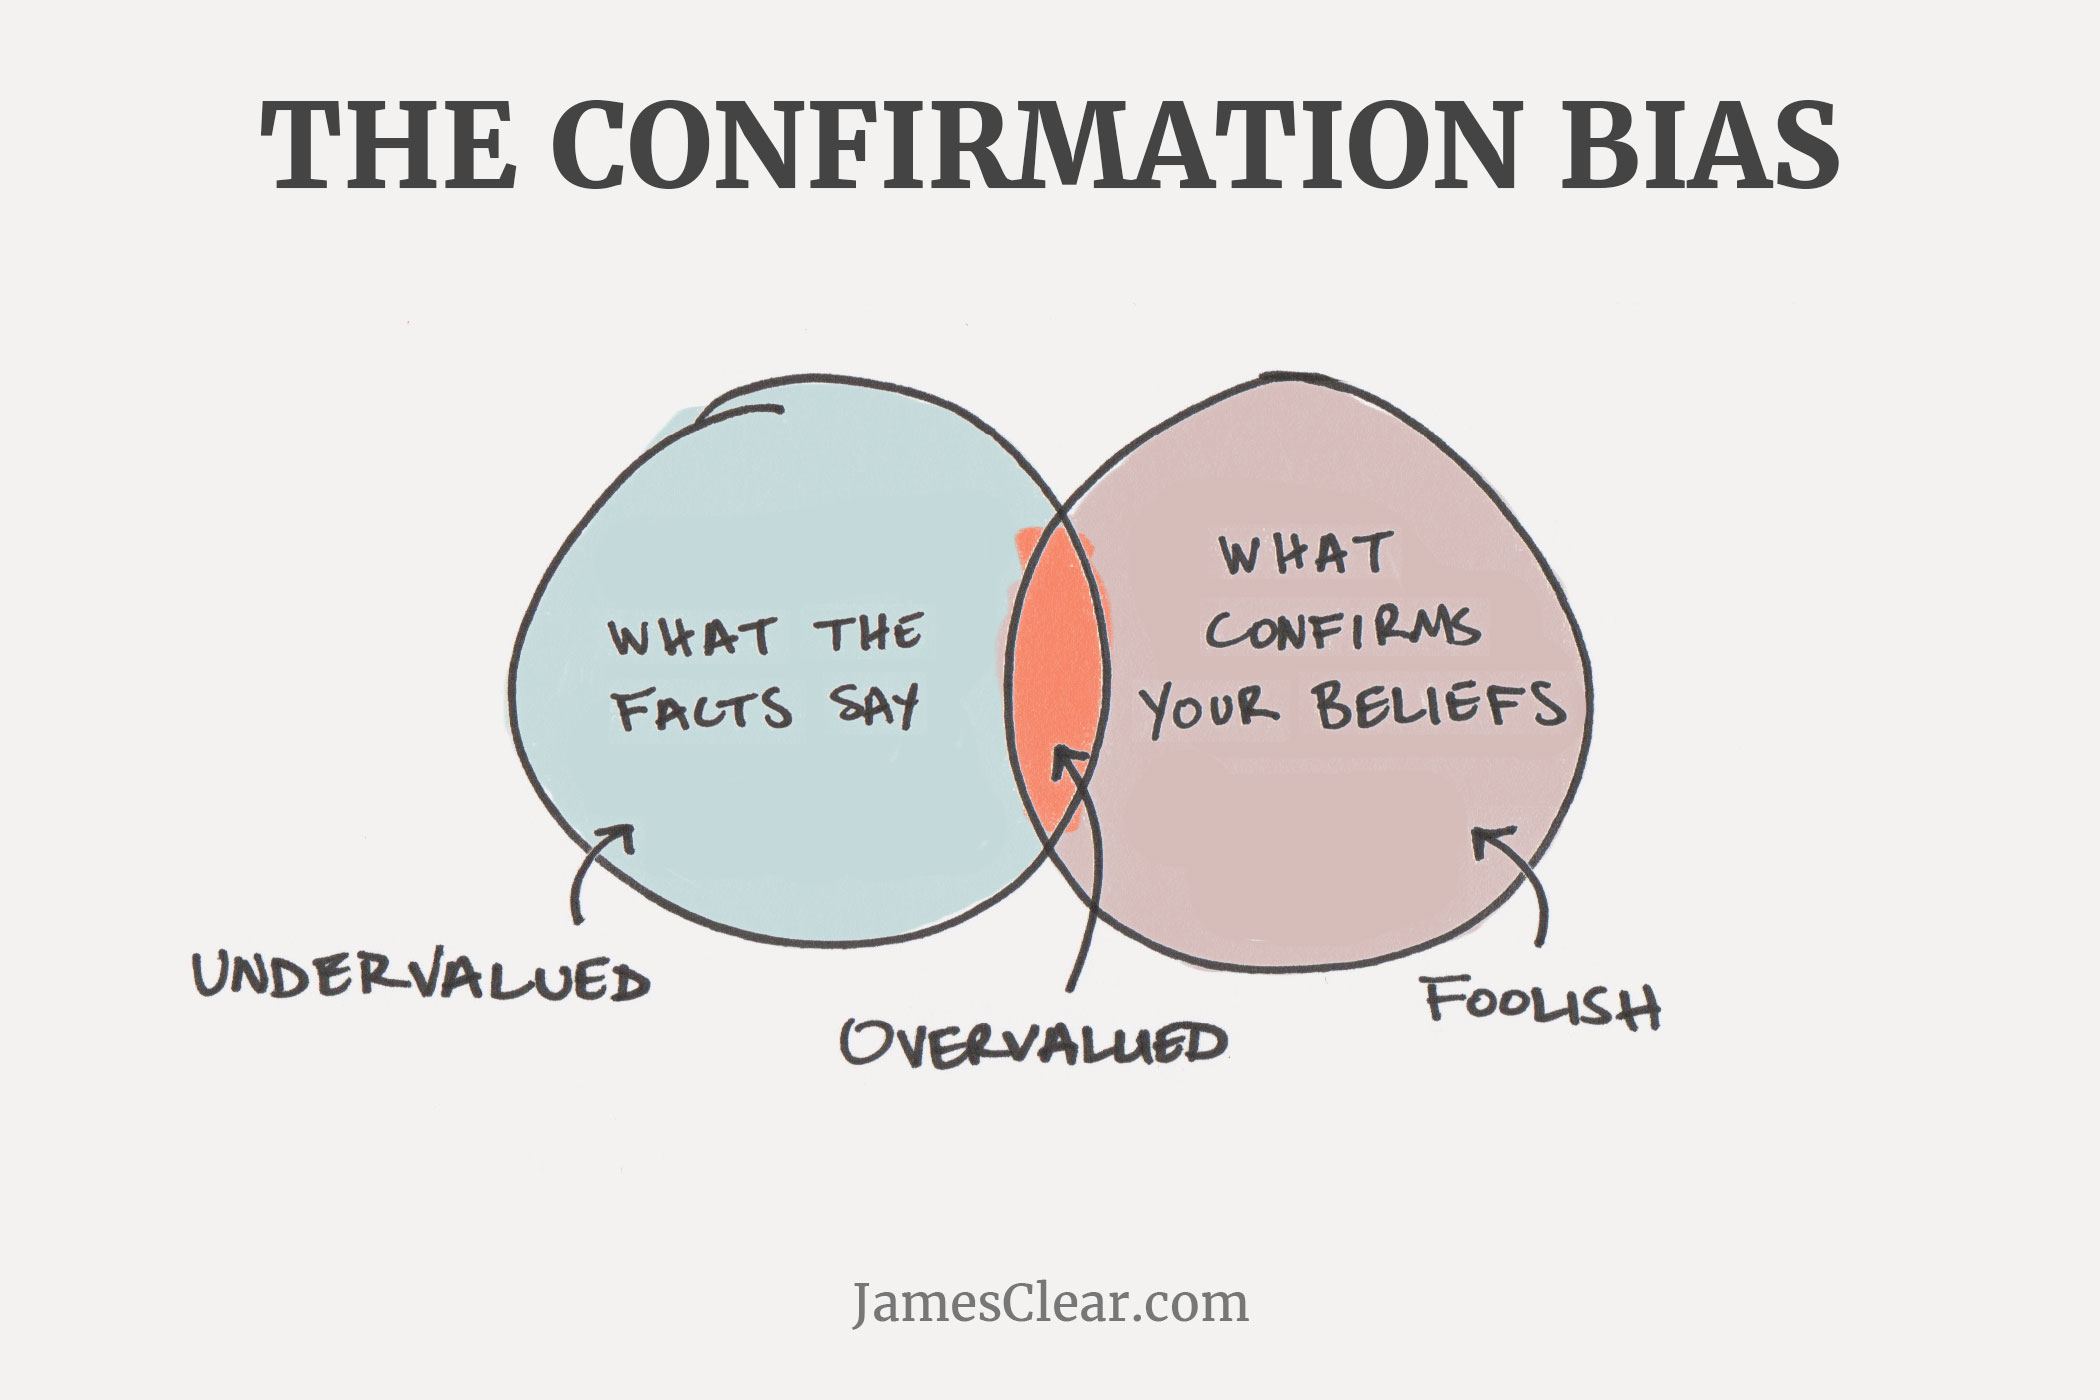 the confirmation bias image